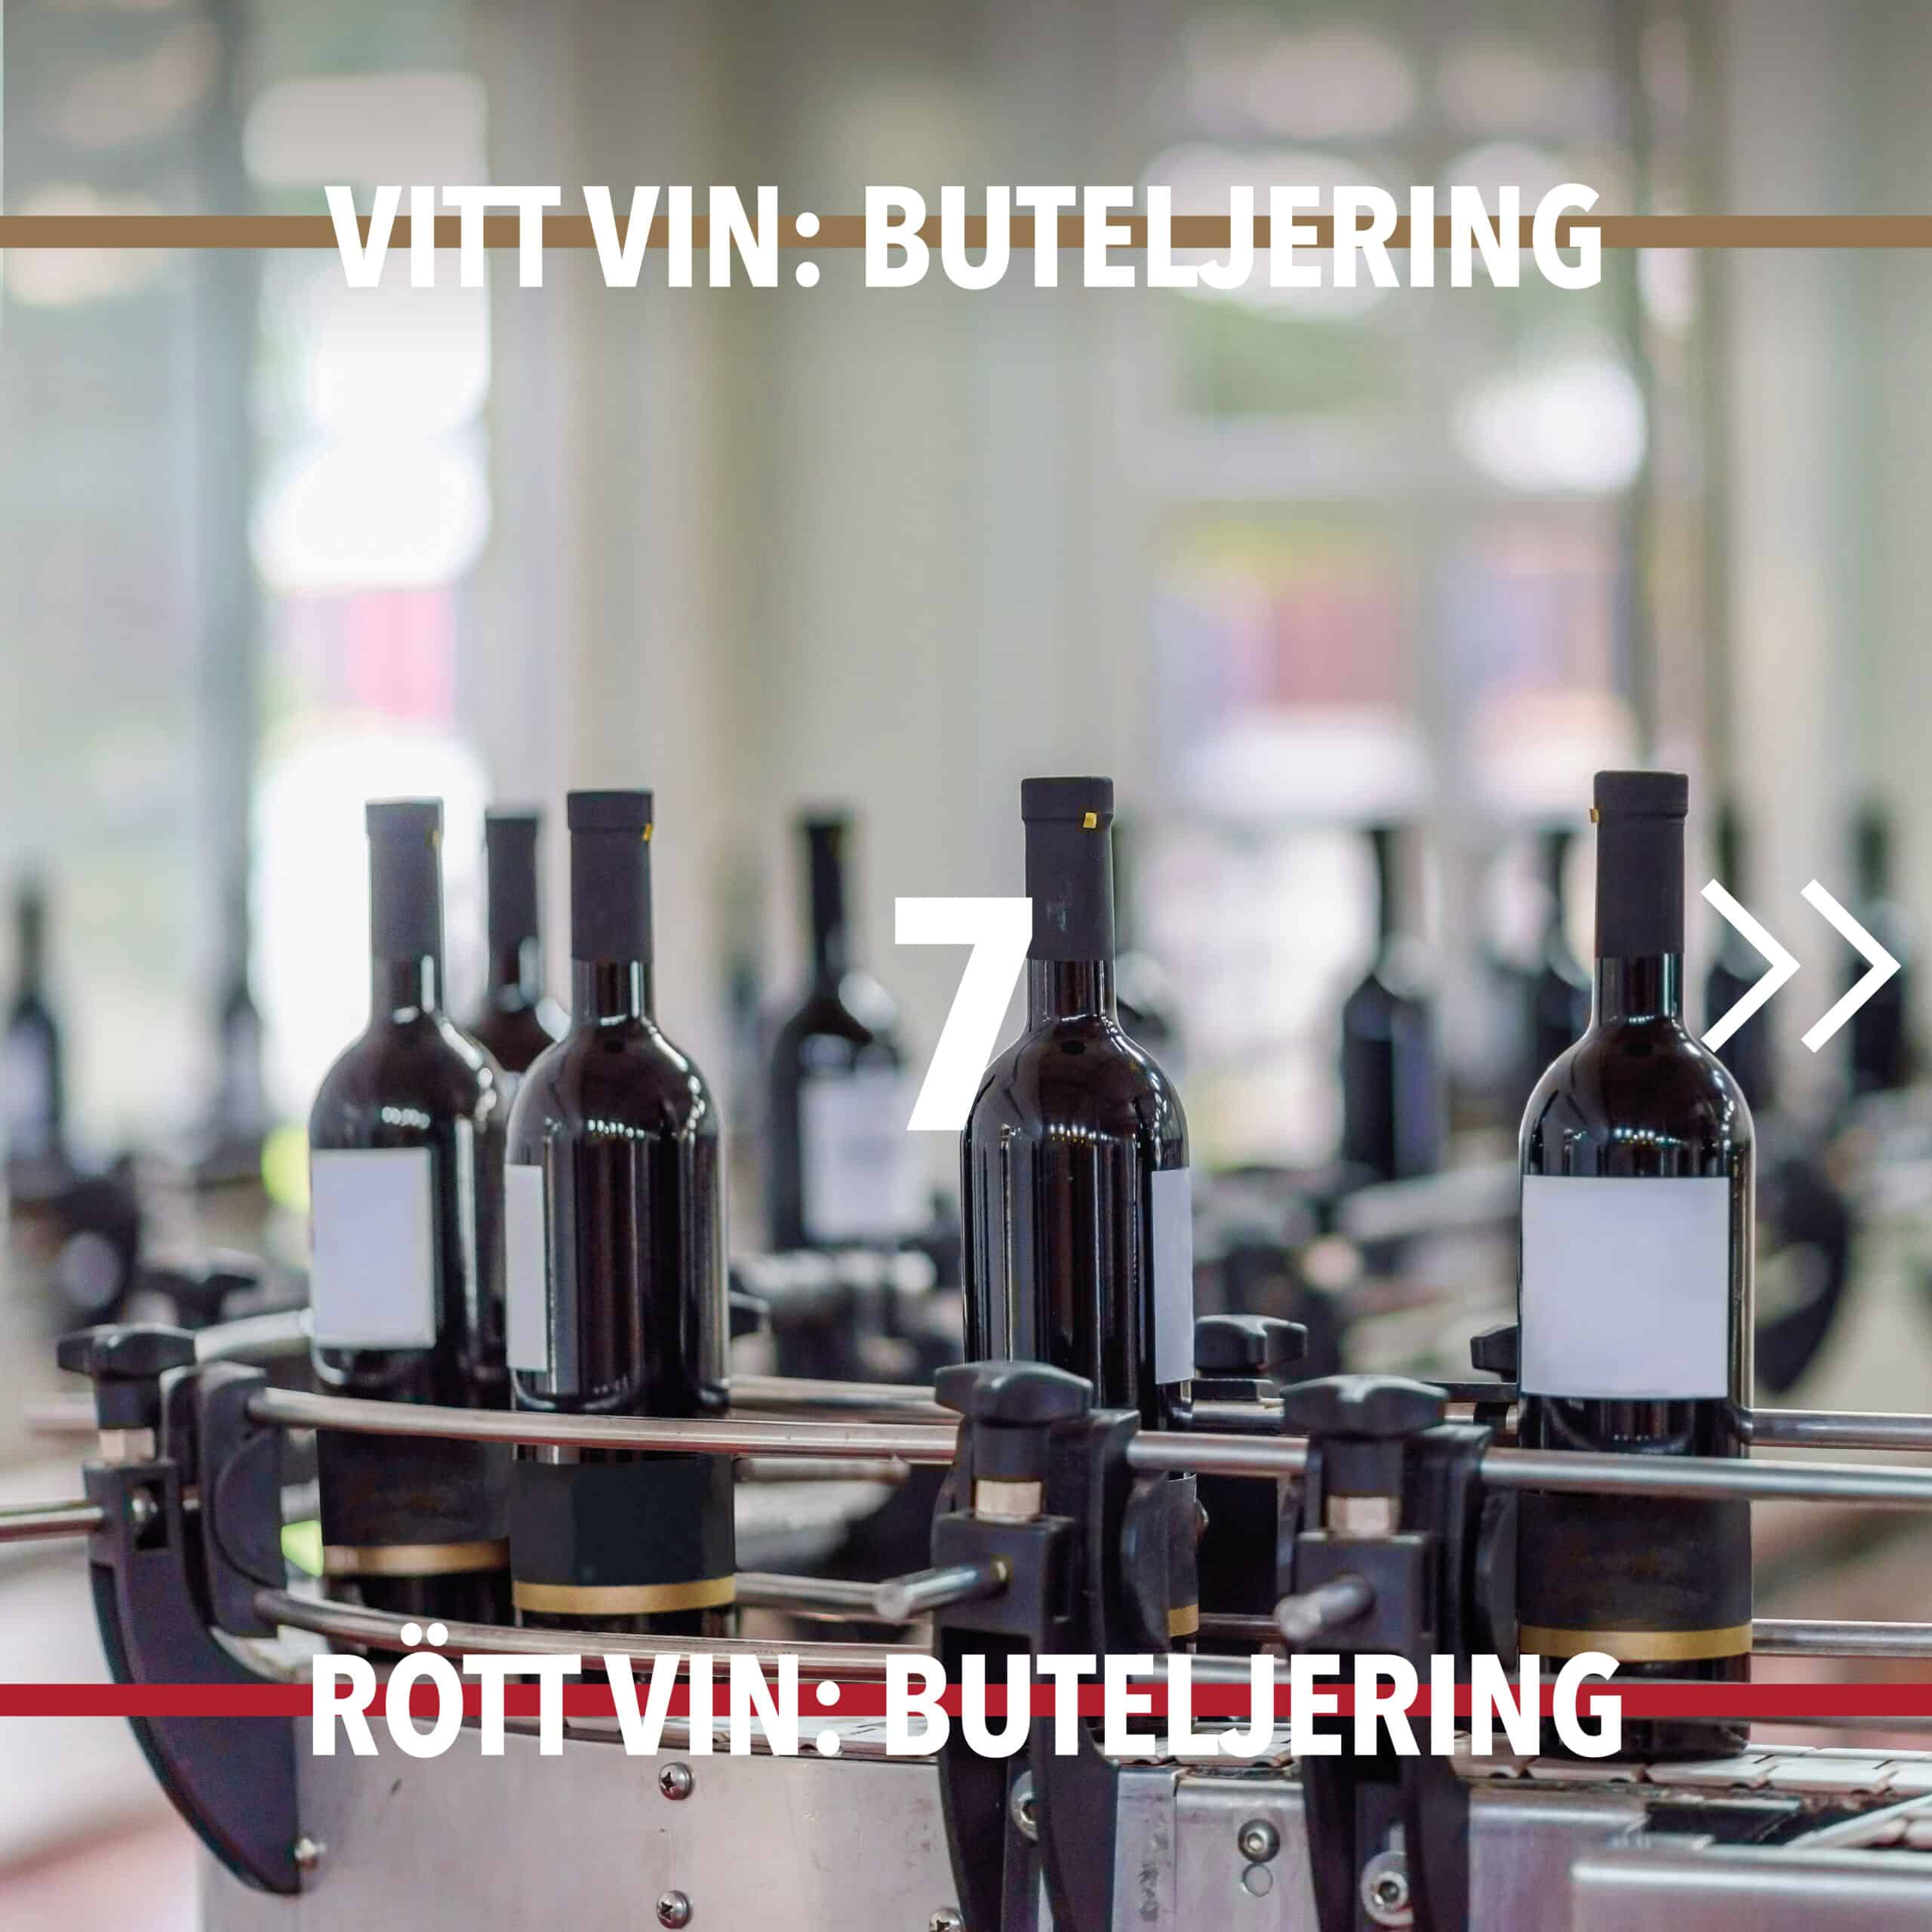 Vintillverkning guide hungry wines: Buteljering